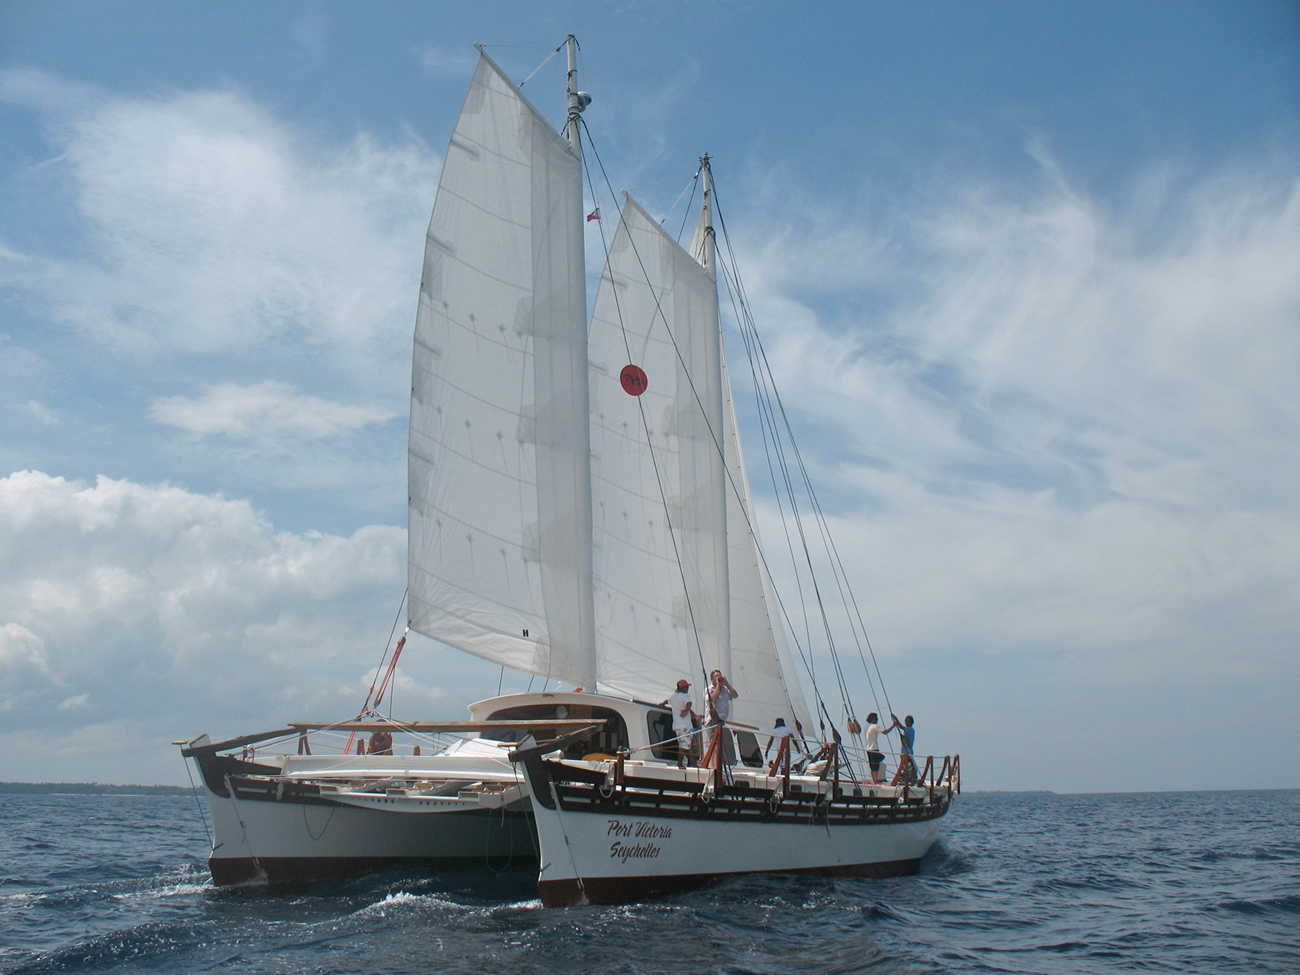 Rear view of Islander 65, wind in the sails, blue and cloudy sky